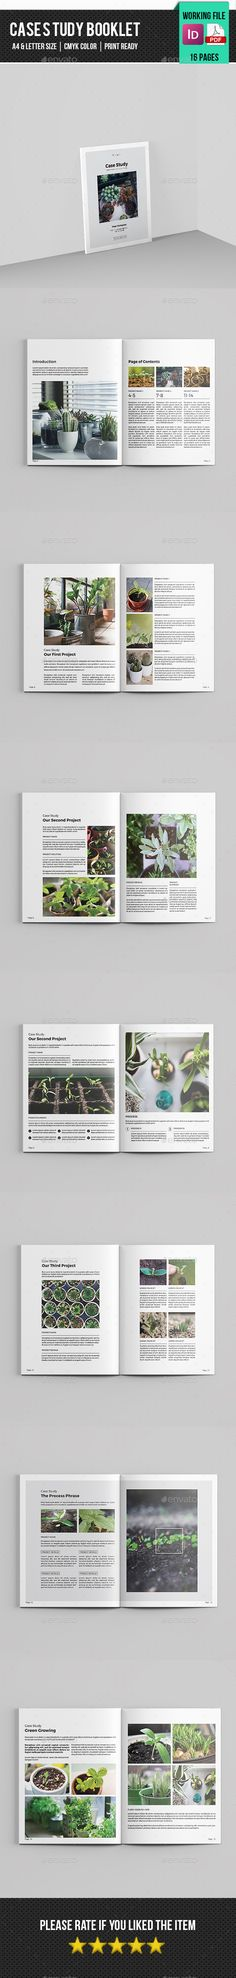 Case Study Booklet-V395  InDesign Template • Download ➝ https://graphicriver.net/item/case-study-bookletv395/17135357?ref=pxcr